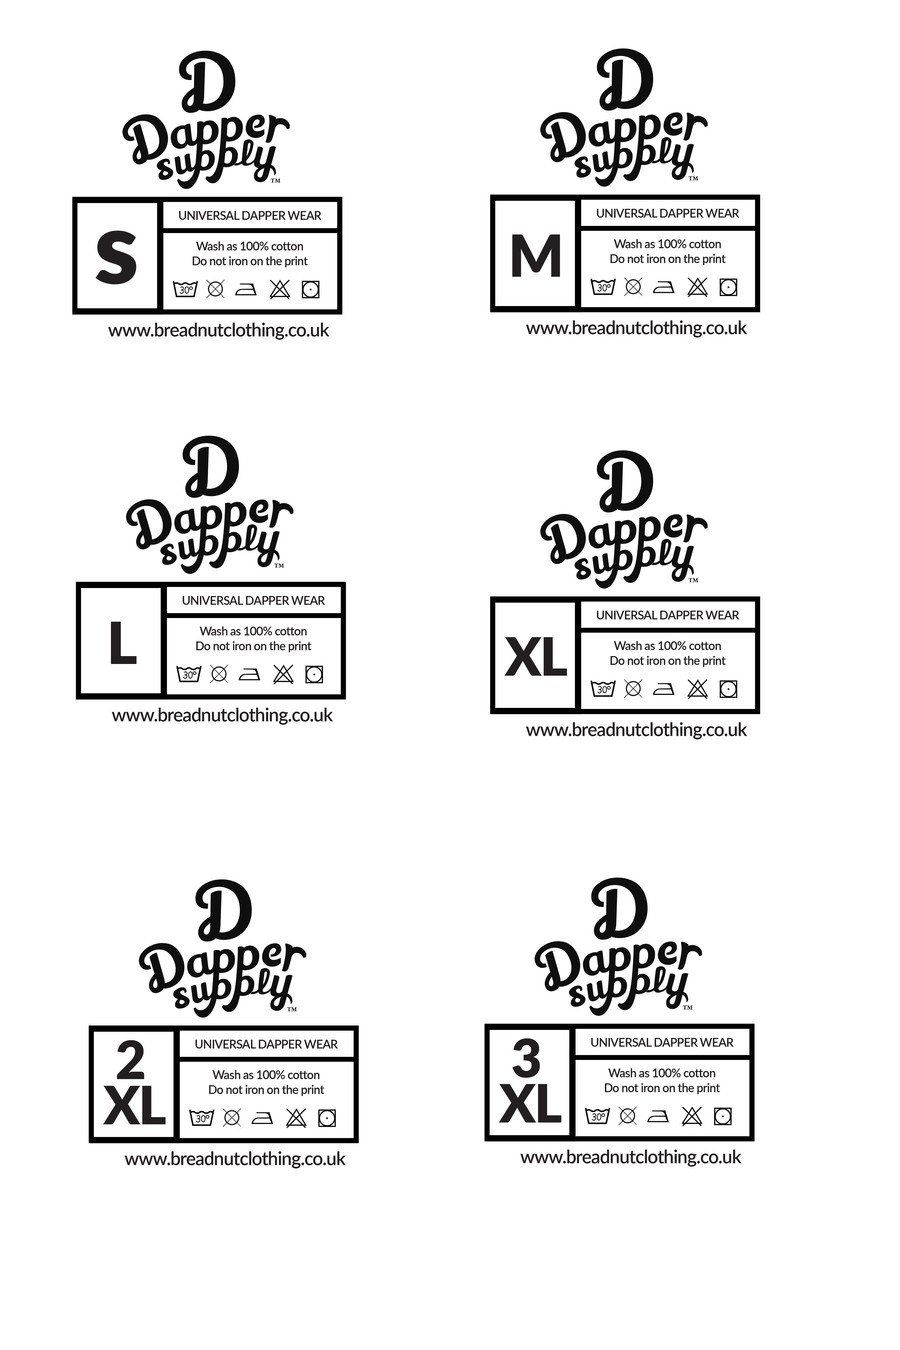 Clothing Care Label Template Entry 1 By Waqas17 For Design A T Shirt Size Labels Label Templates Clothing Care Label Custom Clothing Labels